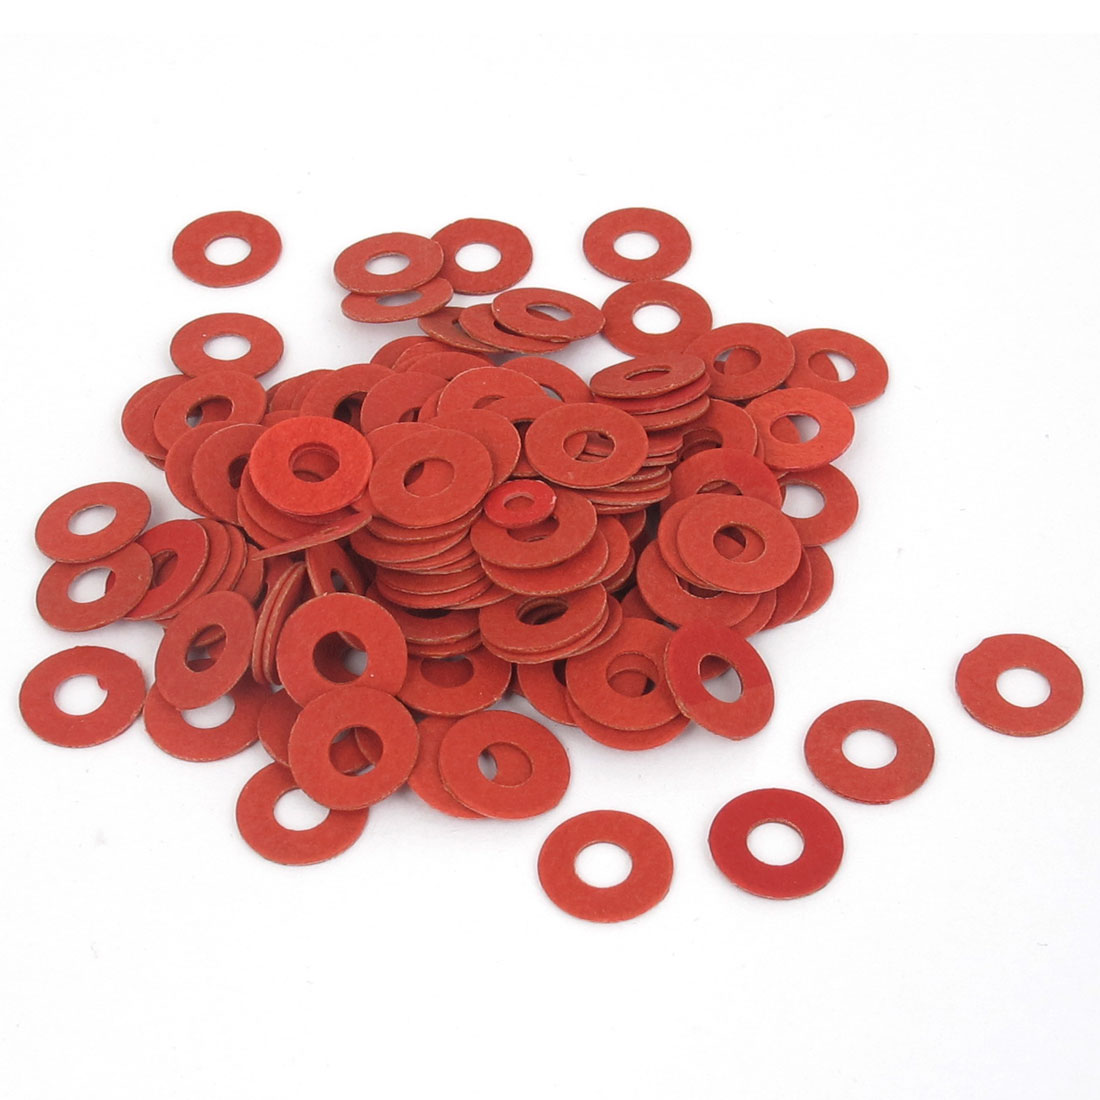 4mmx10mmx0.5mm Fiber Motherboard Insulating Gasket Flat Washer Red 100pcs